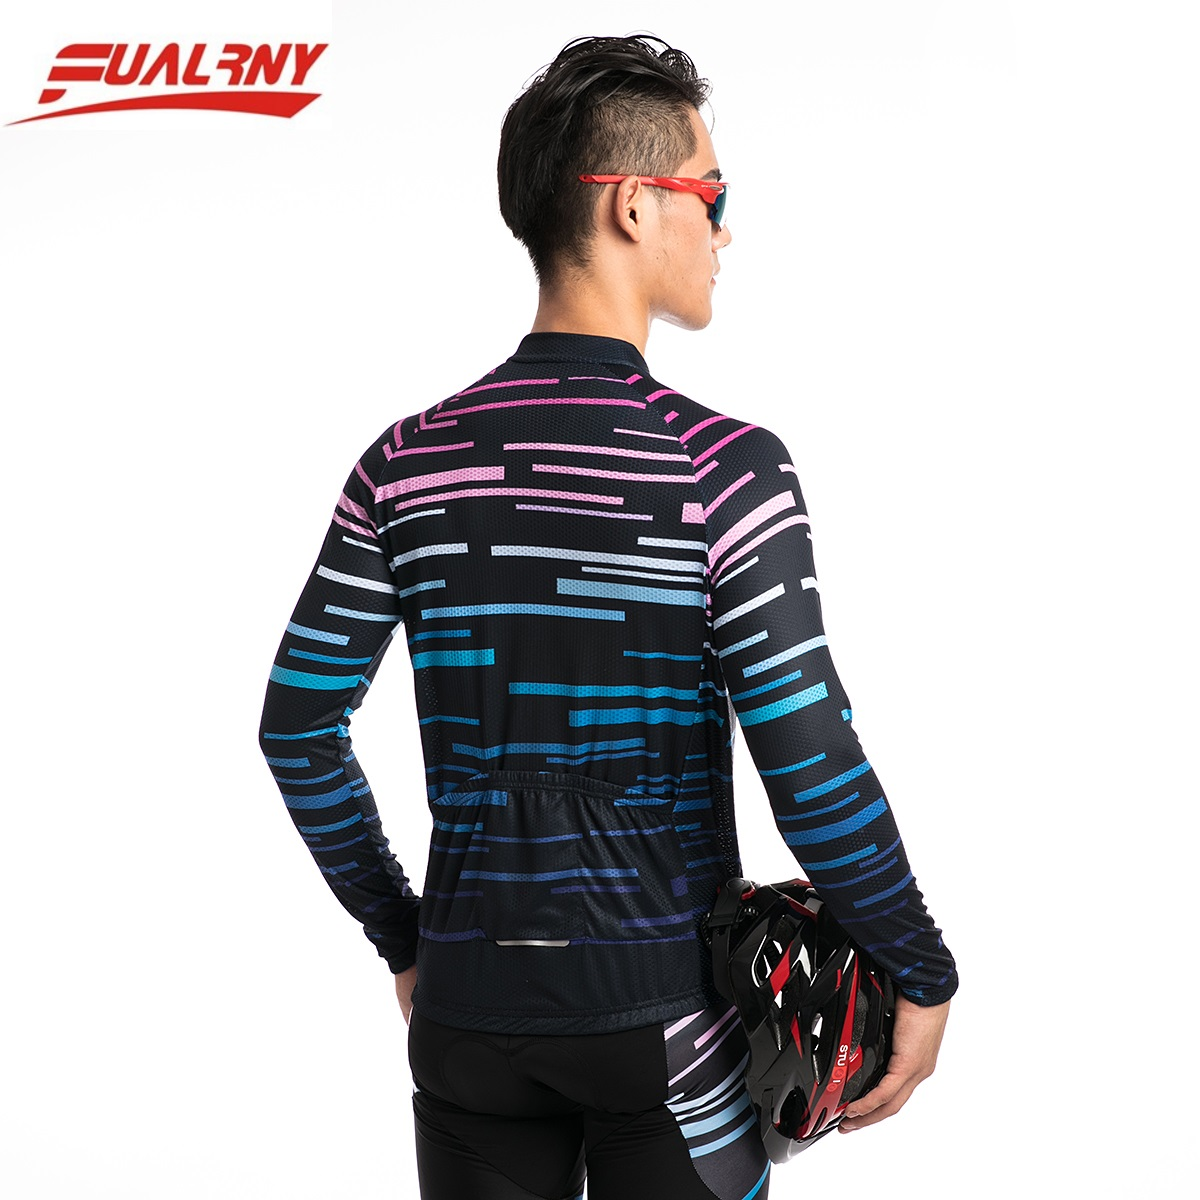 2019 FUALRNY NEW cycling jersey long sleeve men cycling jersey top sale mtb bike wear cycling 100 Polyester jersey mature Line in Cycling Jerseys from Sports Entertainment